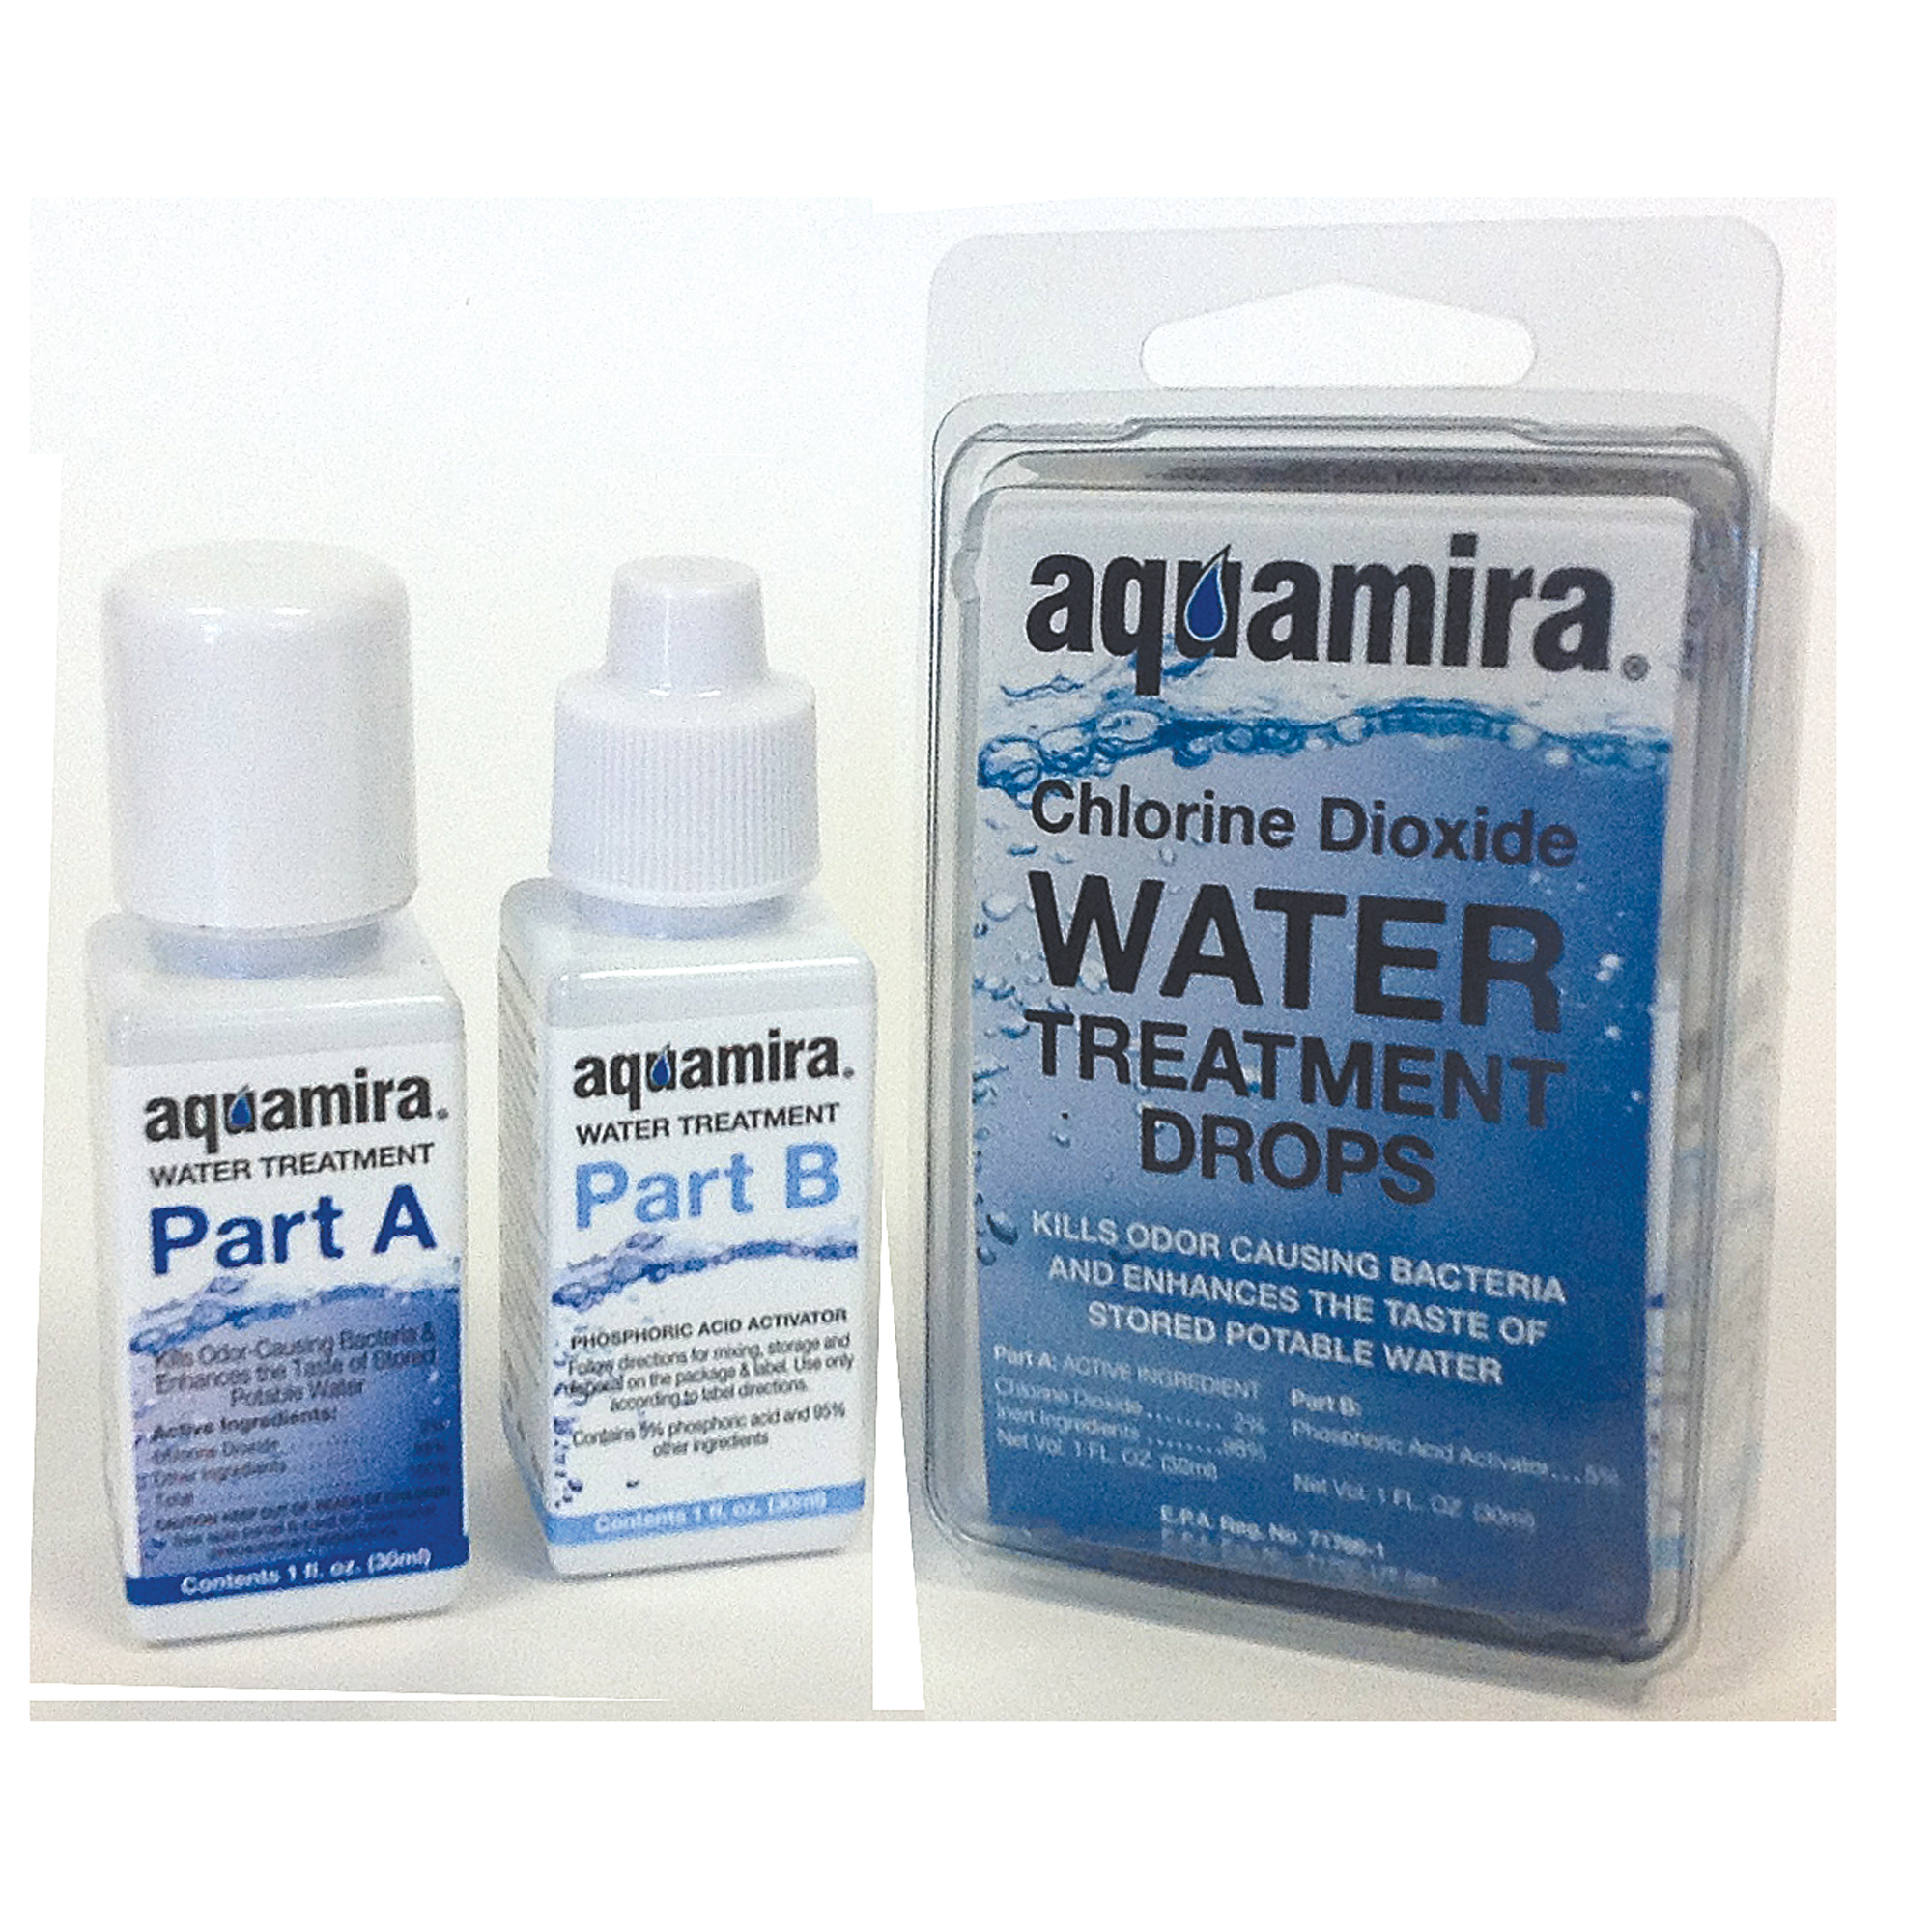 """Aquamira 1 oz. Water Treatment (Chlorine Dioxide) kills bacteria while enhancing the taste of treated water. Everything you need to treat 30 gallons in the field comes in a compact"""" lightweight kit and works in virtually every situation. It's so effective"""" even the CDC recommends Chlorine Dioxide as the most comprehensive water treatment available. Aquamira Water Treatment effectively kills bacteria and enhances the taste of treated water. Unlike iodine or other treatments"""" Aquamira won't discolor your water and improves taste. It's no wonder why the CDC recommends using Chlorine Dioxide for treating water in the backcountry. Aquamira's EPA registered chlorine dioxide formula has consistently proven to be effective in clear"""" muddy"""" warm and cold water. Small size"""" portability and long shelf life allows this highly effective treatment method to be easily carried and used by individuals anywhere in the world. Each kit contains everything you need to treat up to 30 gallons of water."""